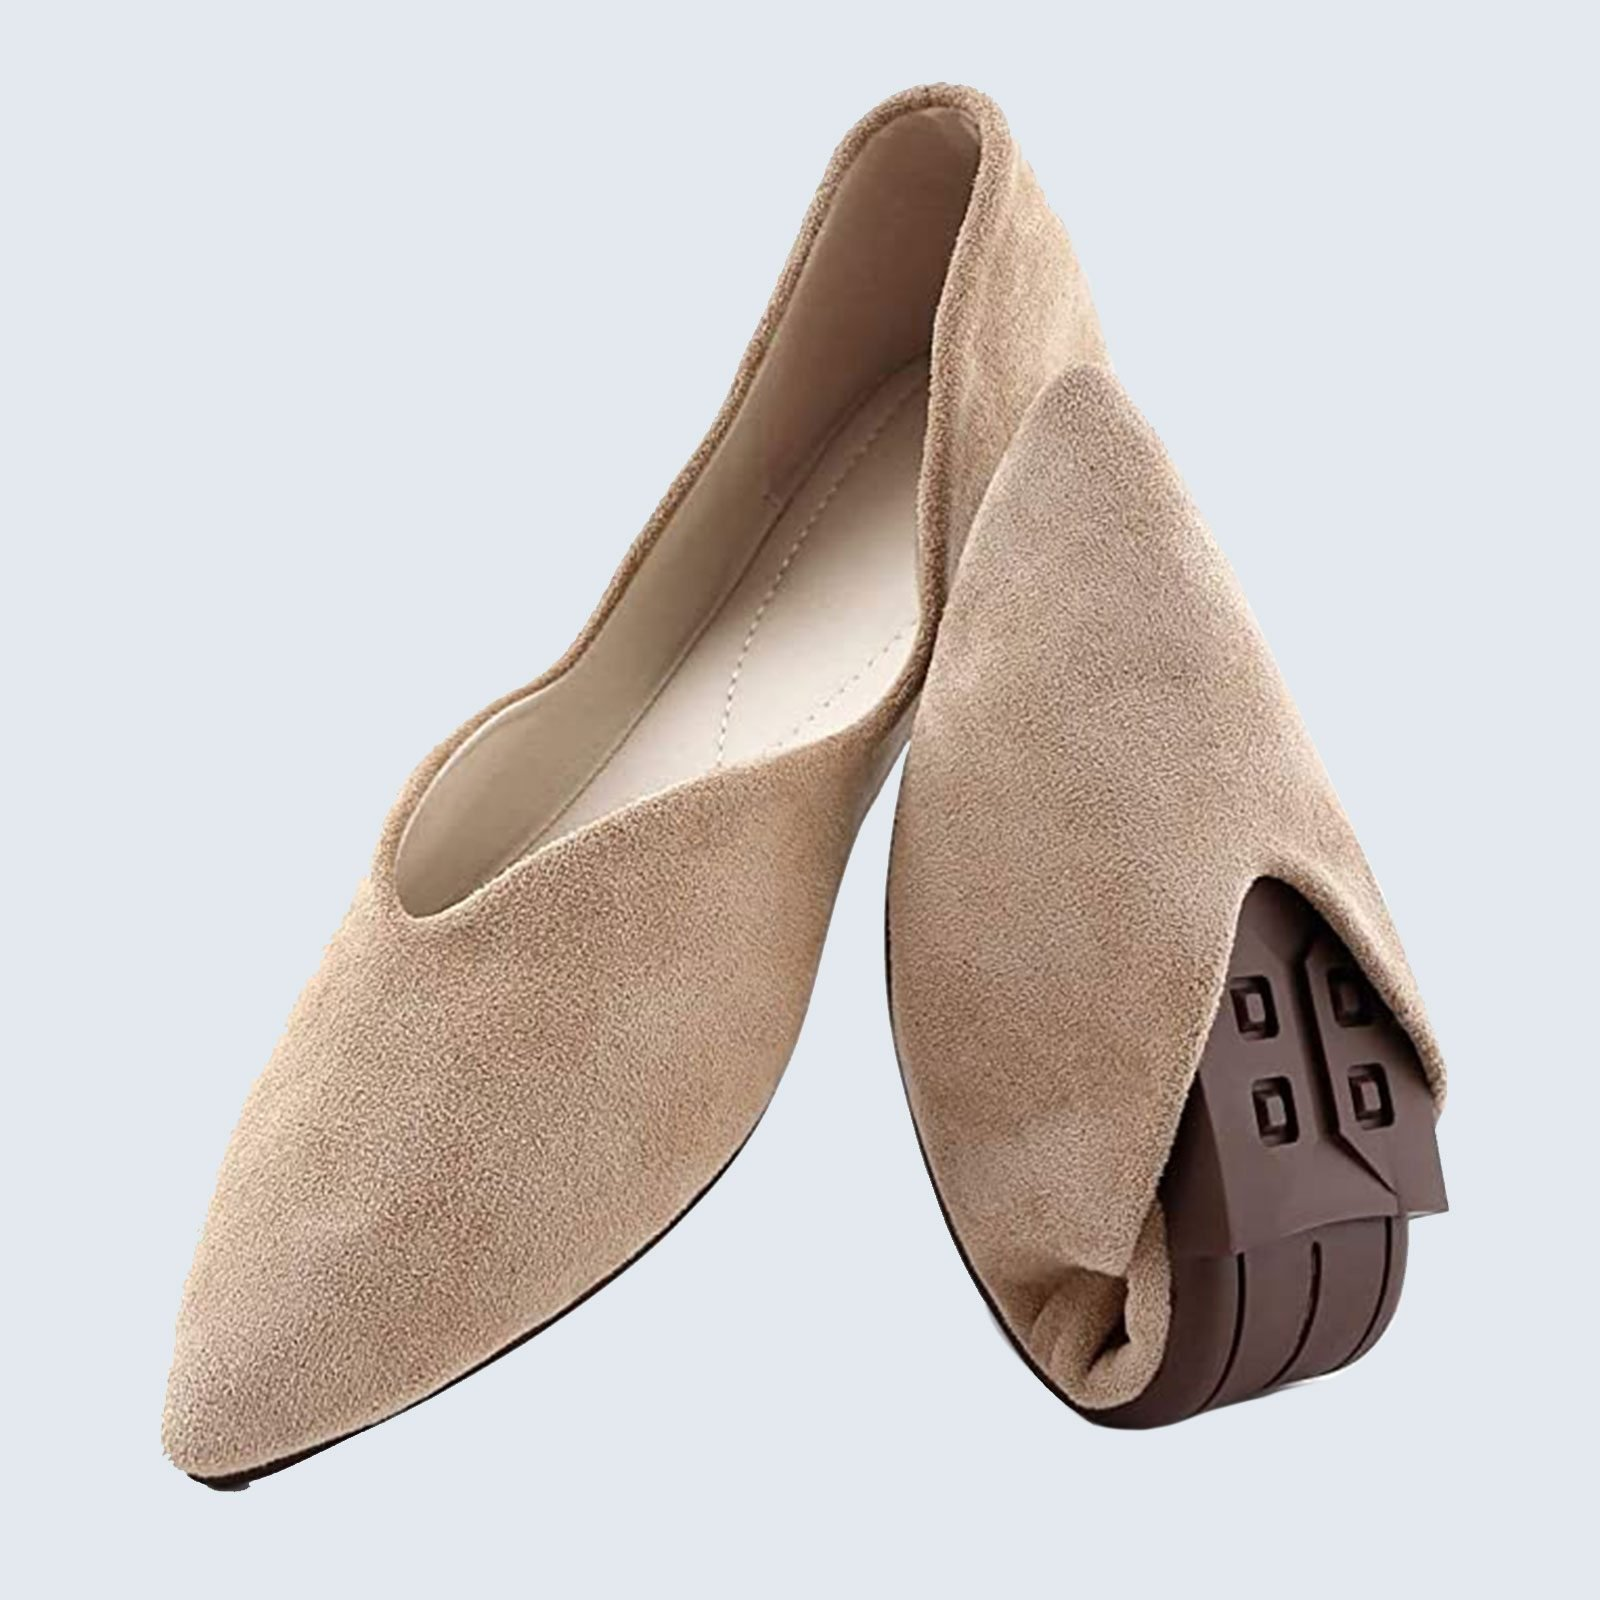 For the stylish mom who's always on the go: Cundo Ballet Flats